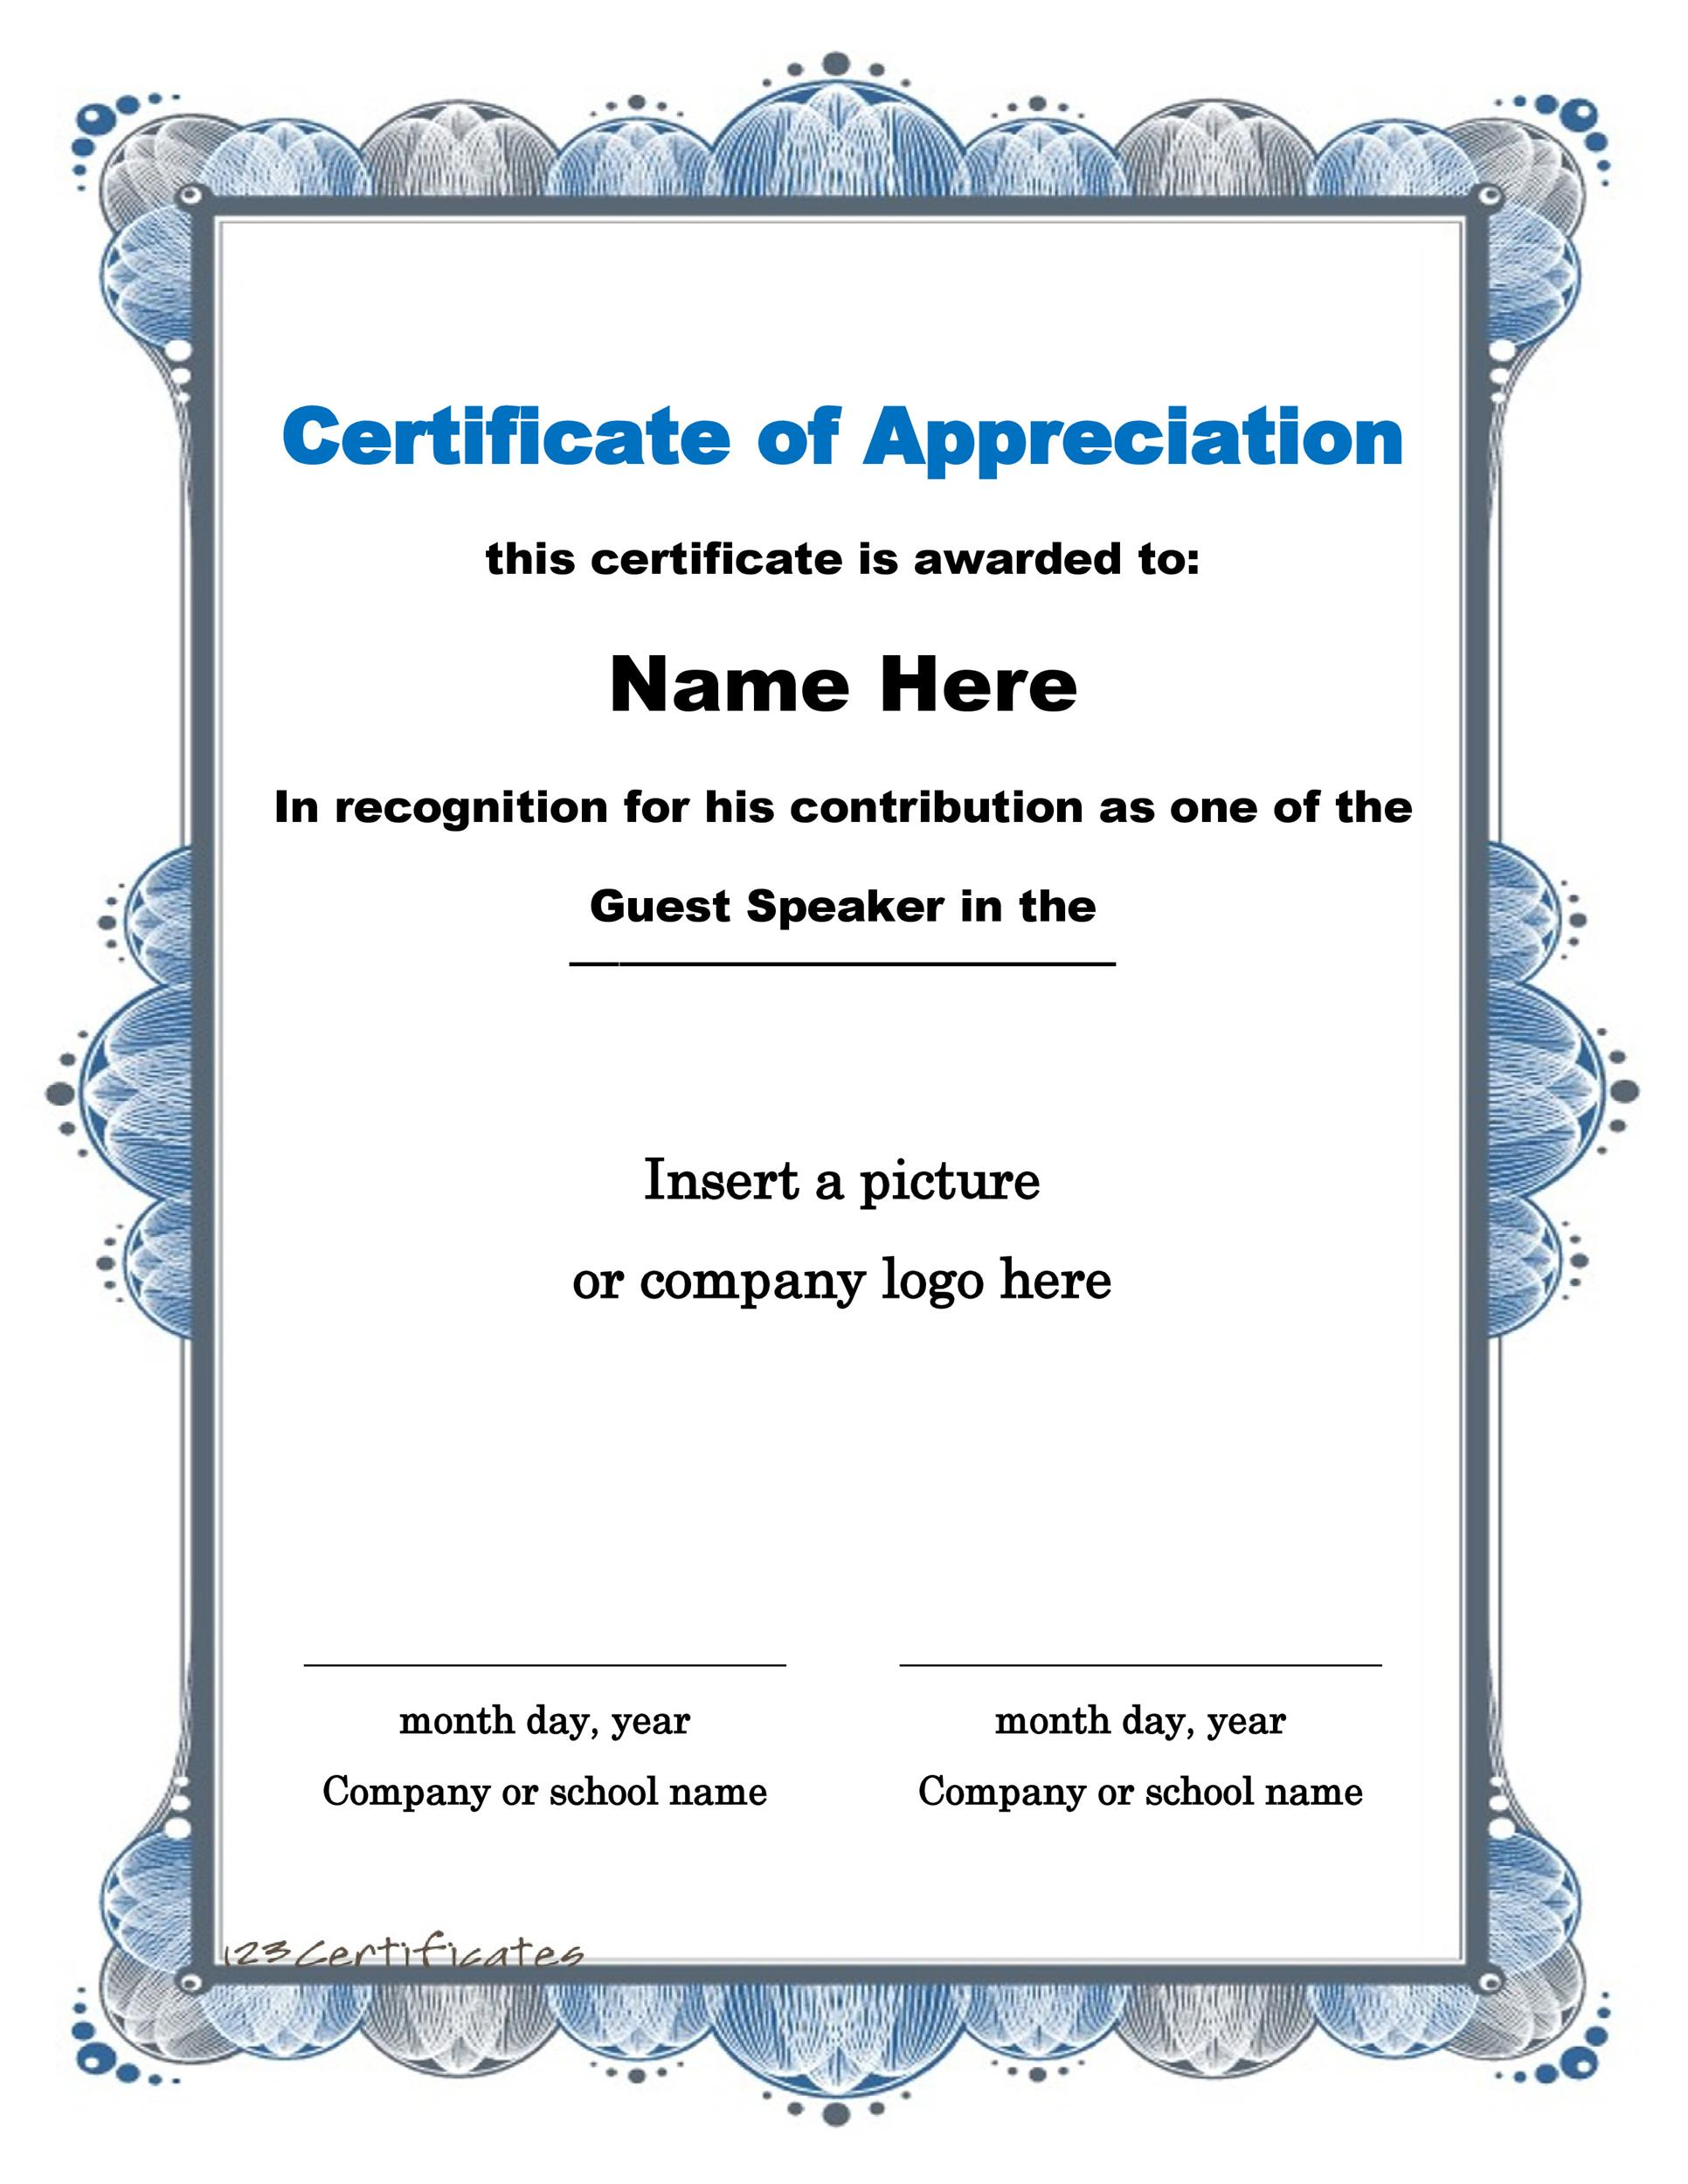 30 free certificate of appreciation templates and letters printable certificate of appreciation 02 yadclub Gallery